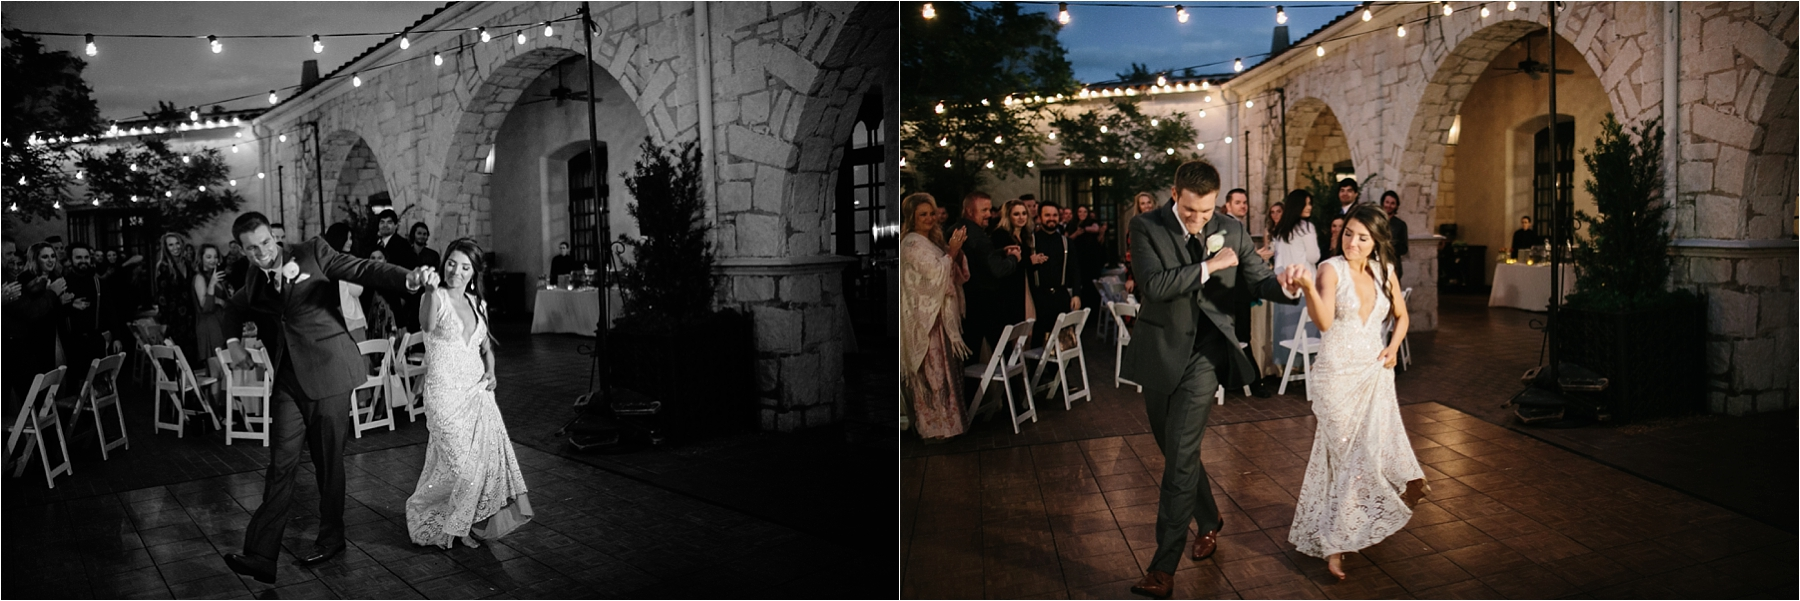 Devyn + Caden __ a Dallas Arboretum Garden Style Wedding by North Texas Wedding Photographer Rachel Meagan Photography __ 128